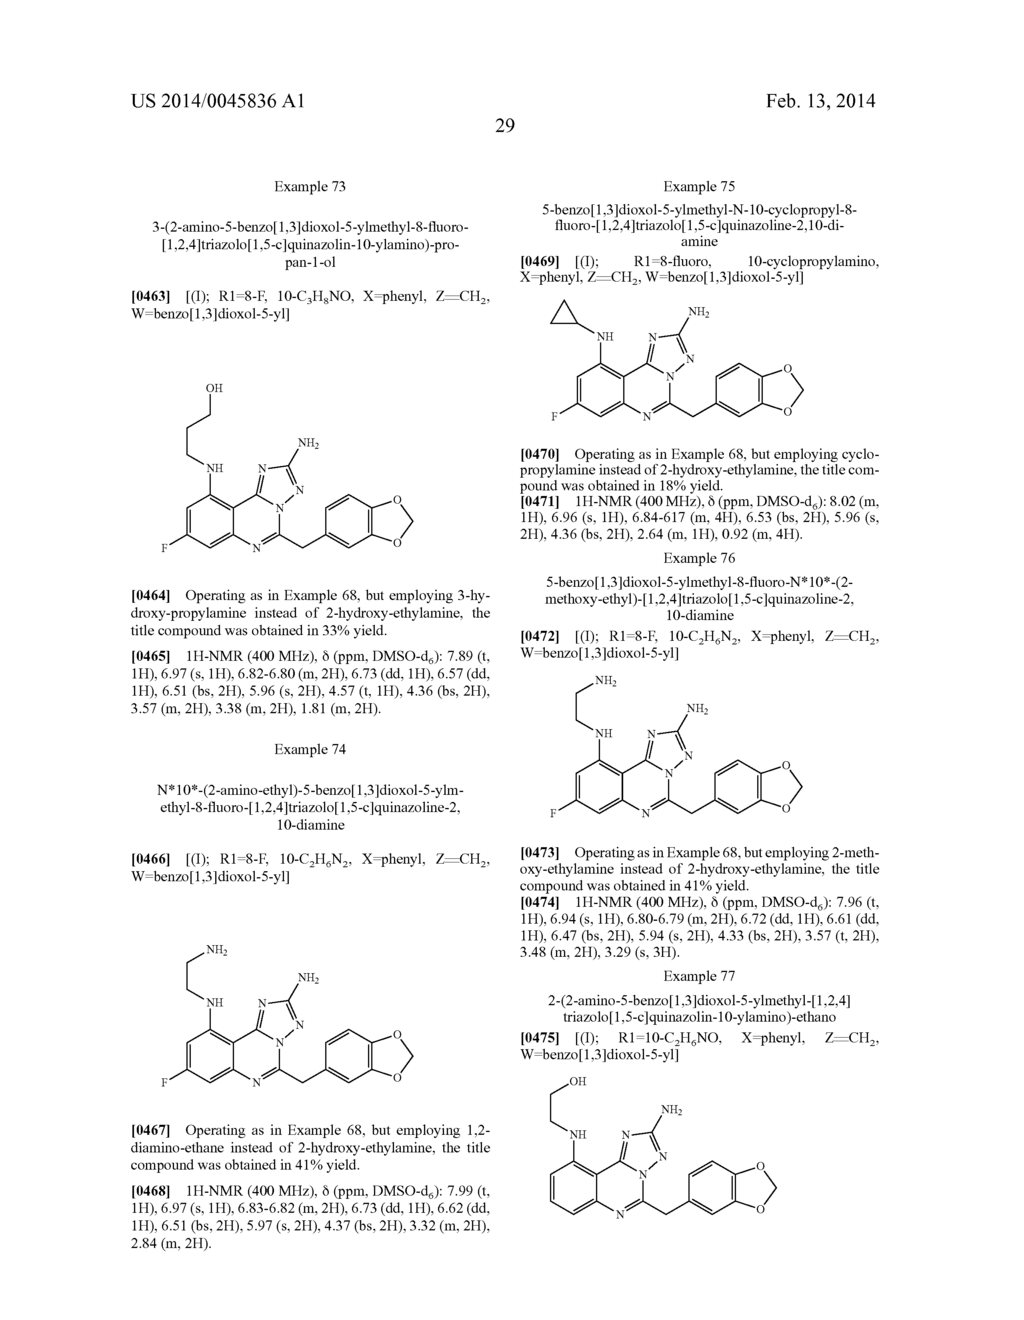 [1,2,4]TRIAZOLO[1,5-C]PYRIMIDINE DERIVATIVES AS HSP90 MODULATORS - diagram, schematic, and image 30